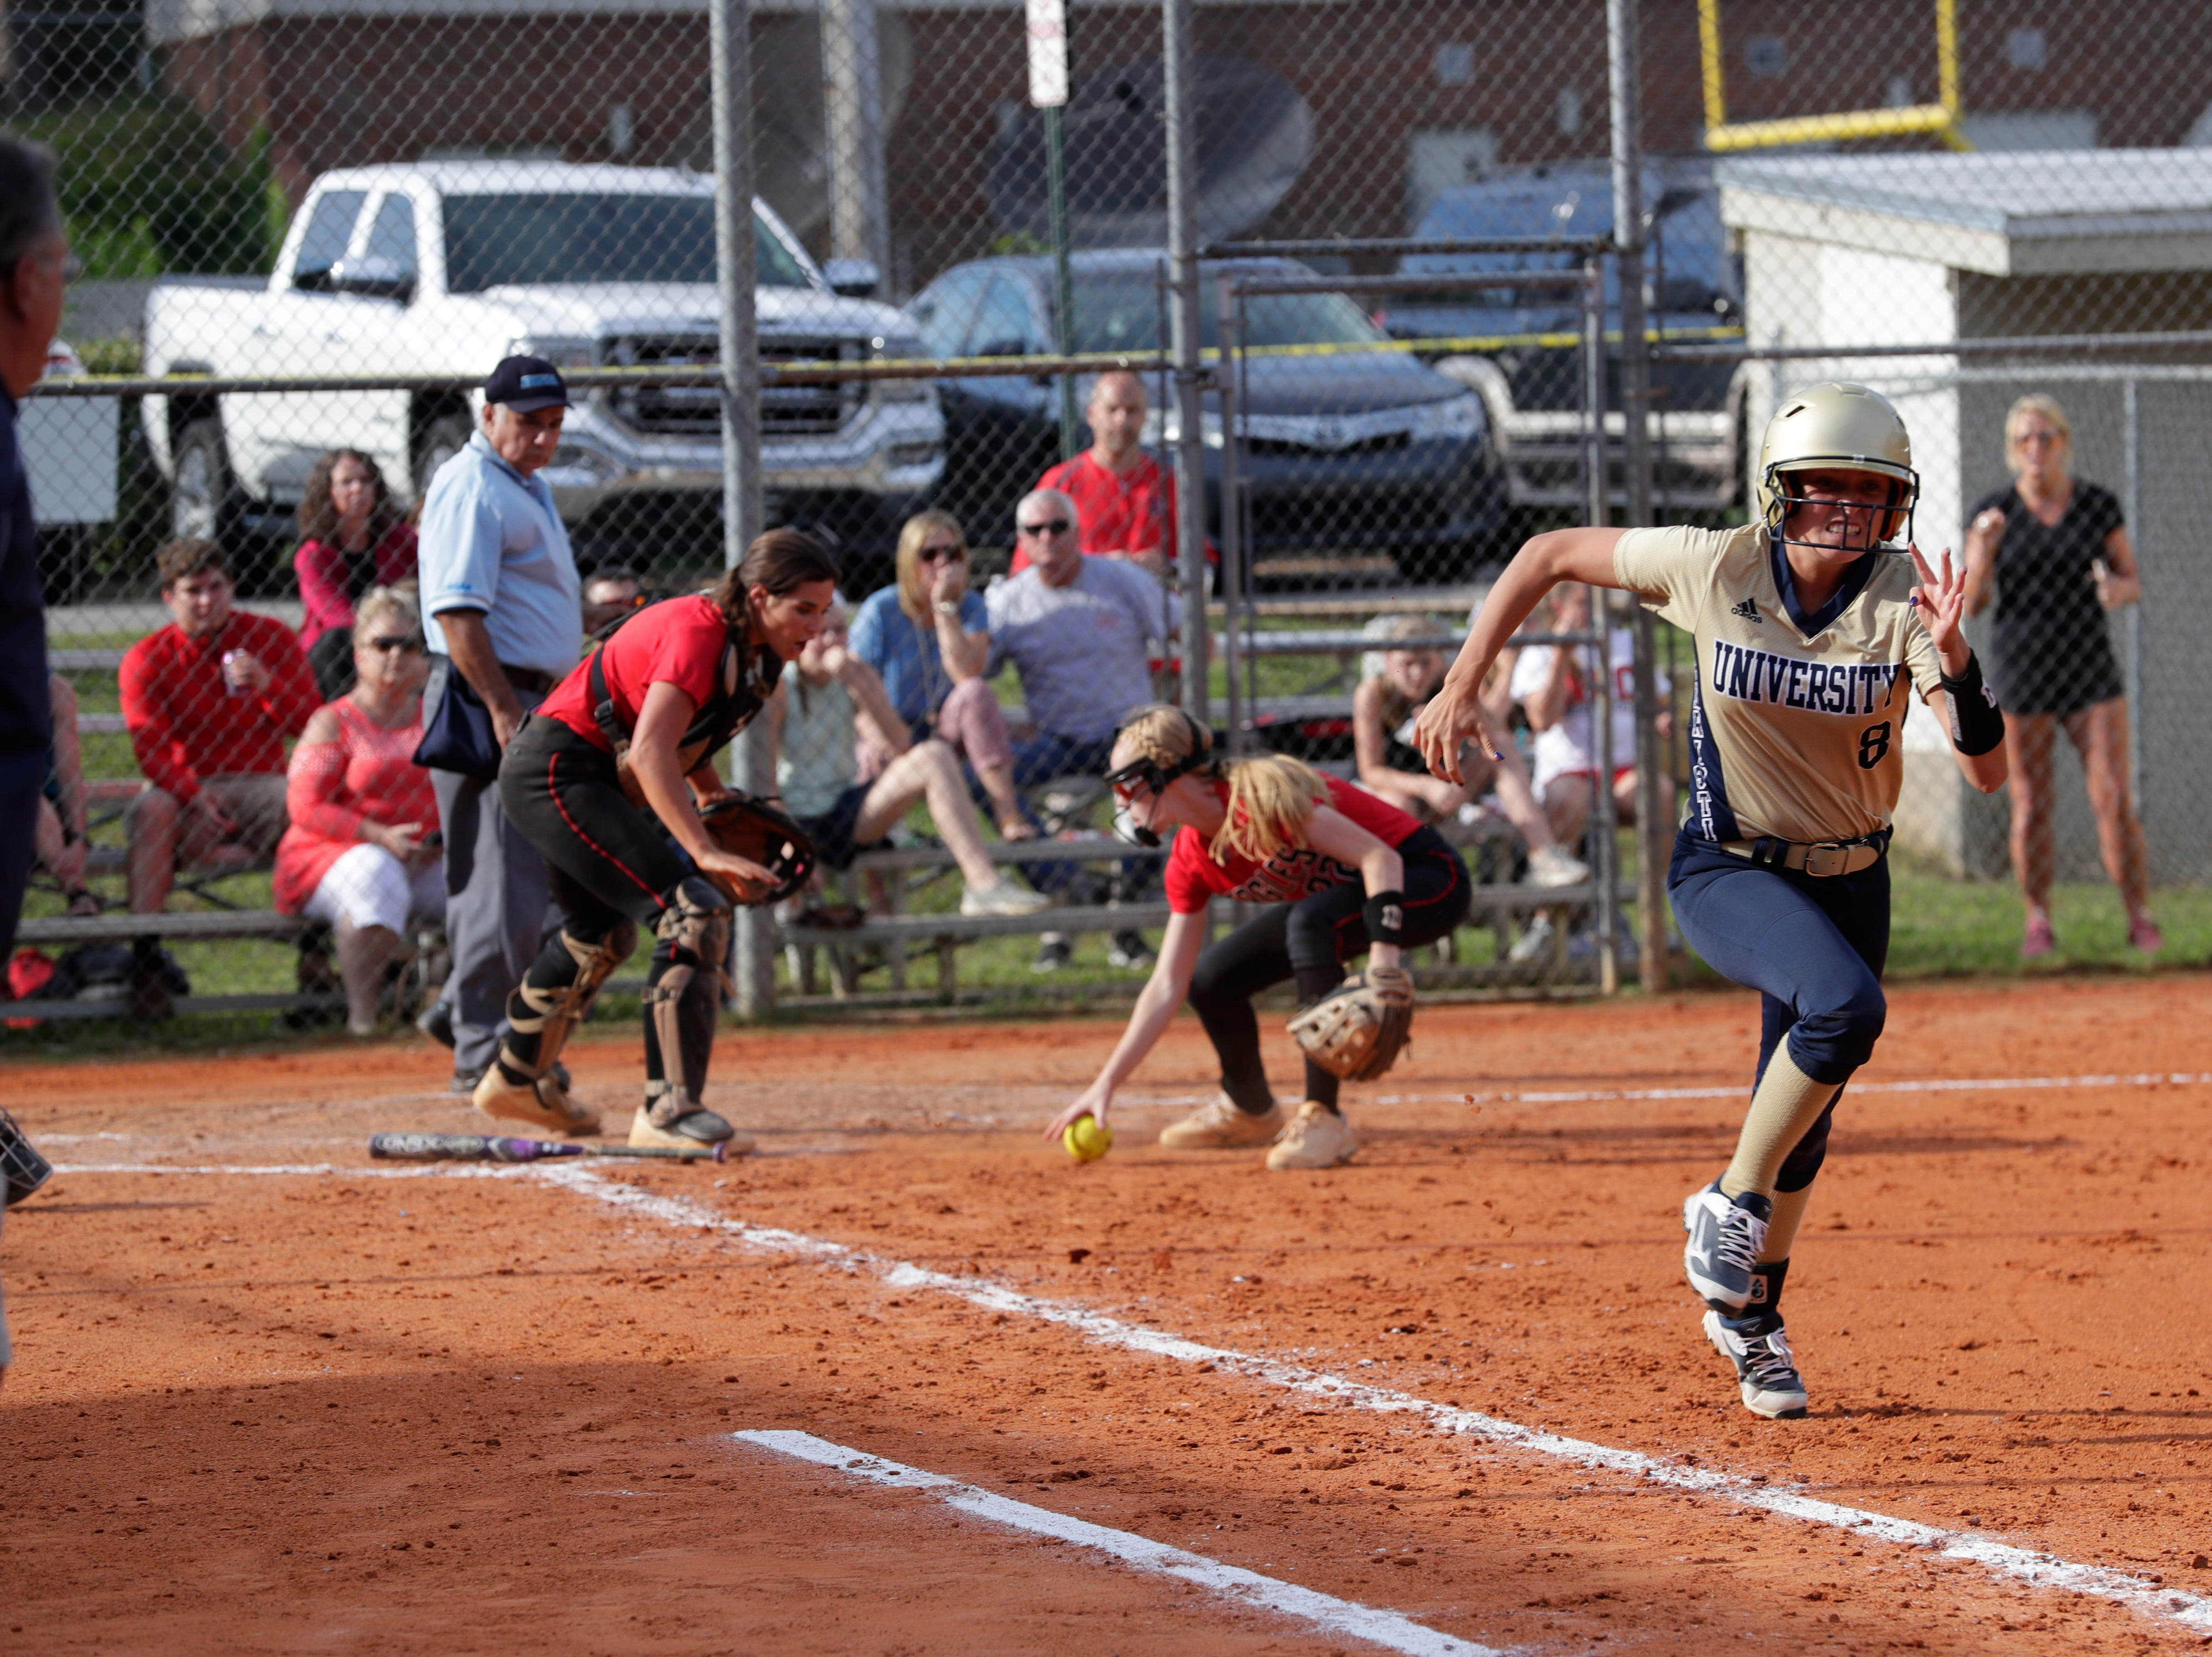 University Christian's Sway Tucker (8) runs to first as North Florida Christian's Chloe Culp (1) and Maddie Mayo (22) go for the ball during the 1-3A regional final game between NFC and University Christian at NFC Tuesday, May 14, 2019. UC defeated NFC 16 to 11 to advance to the state tournament.